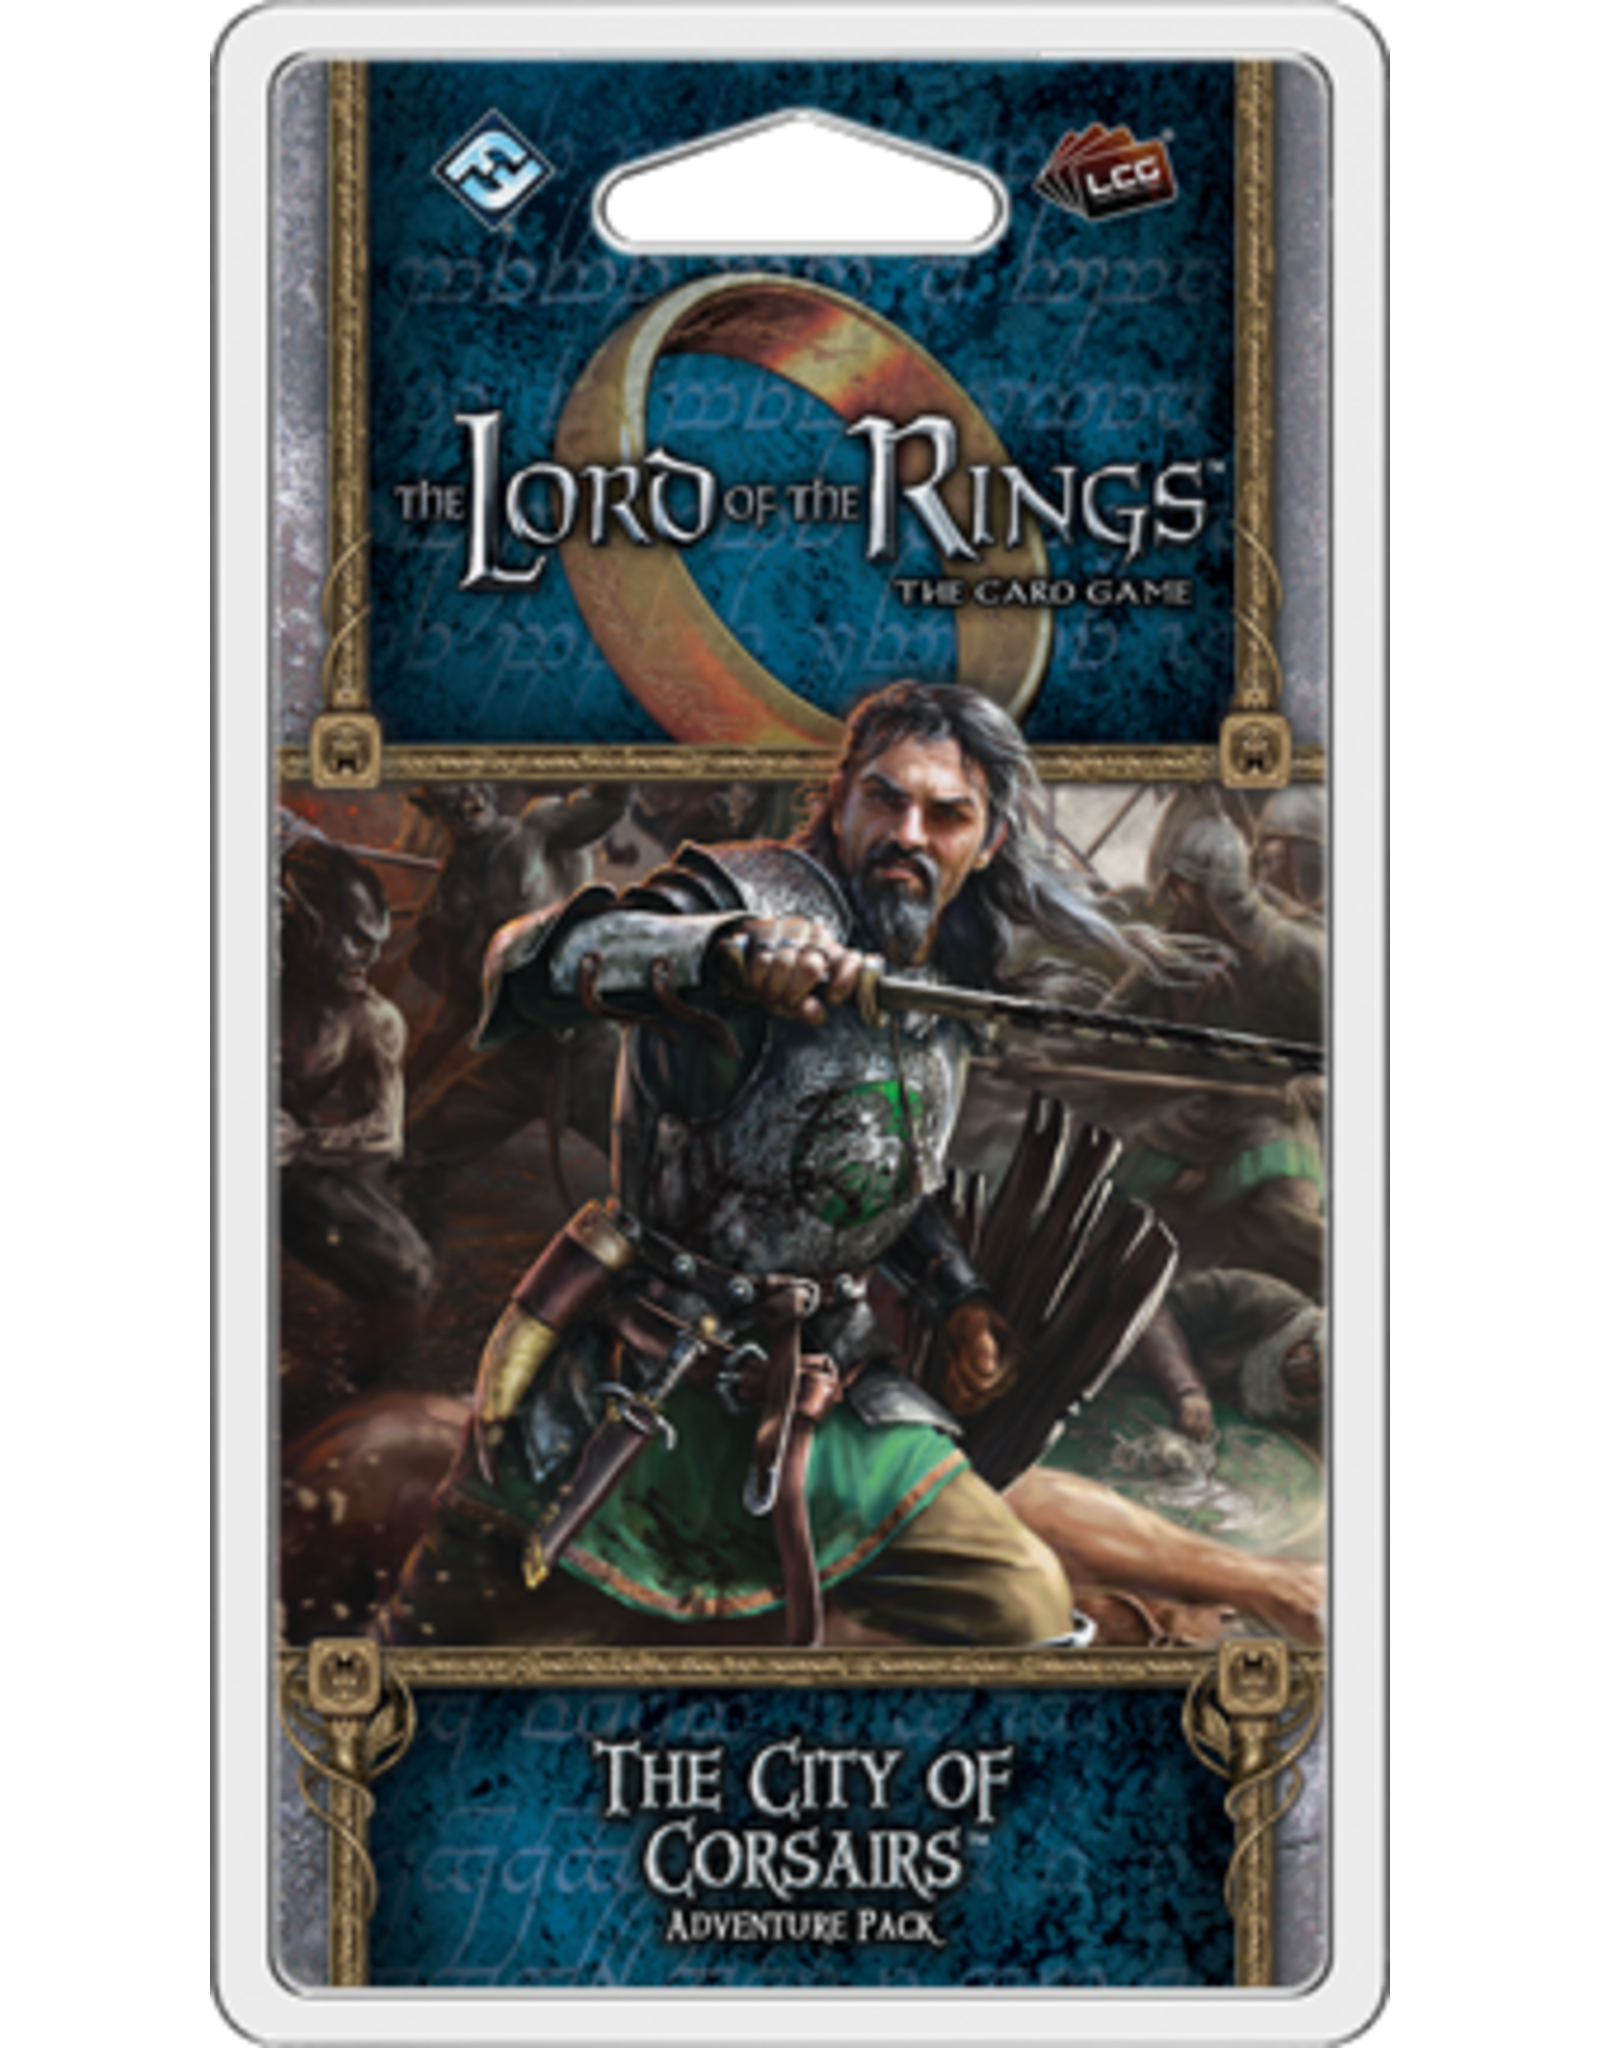 Lord of the Rings LCG The City of Corsairs Adventure Pack